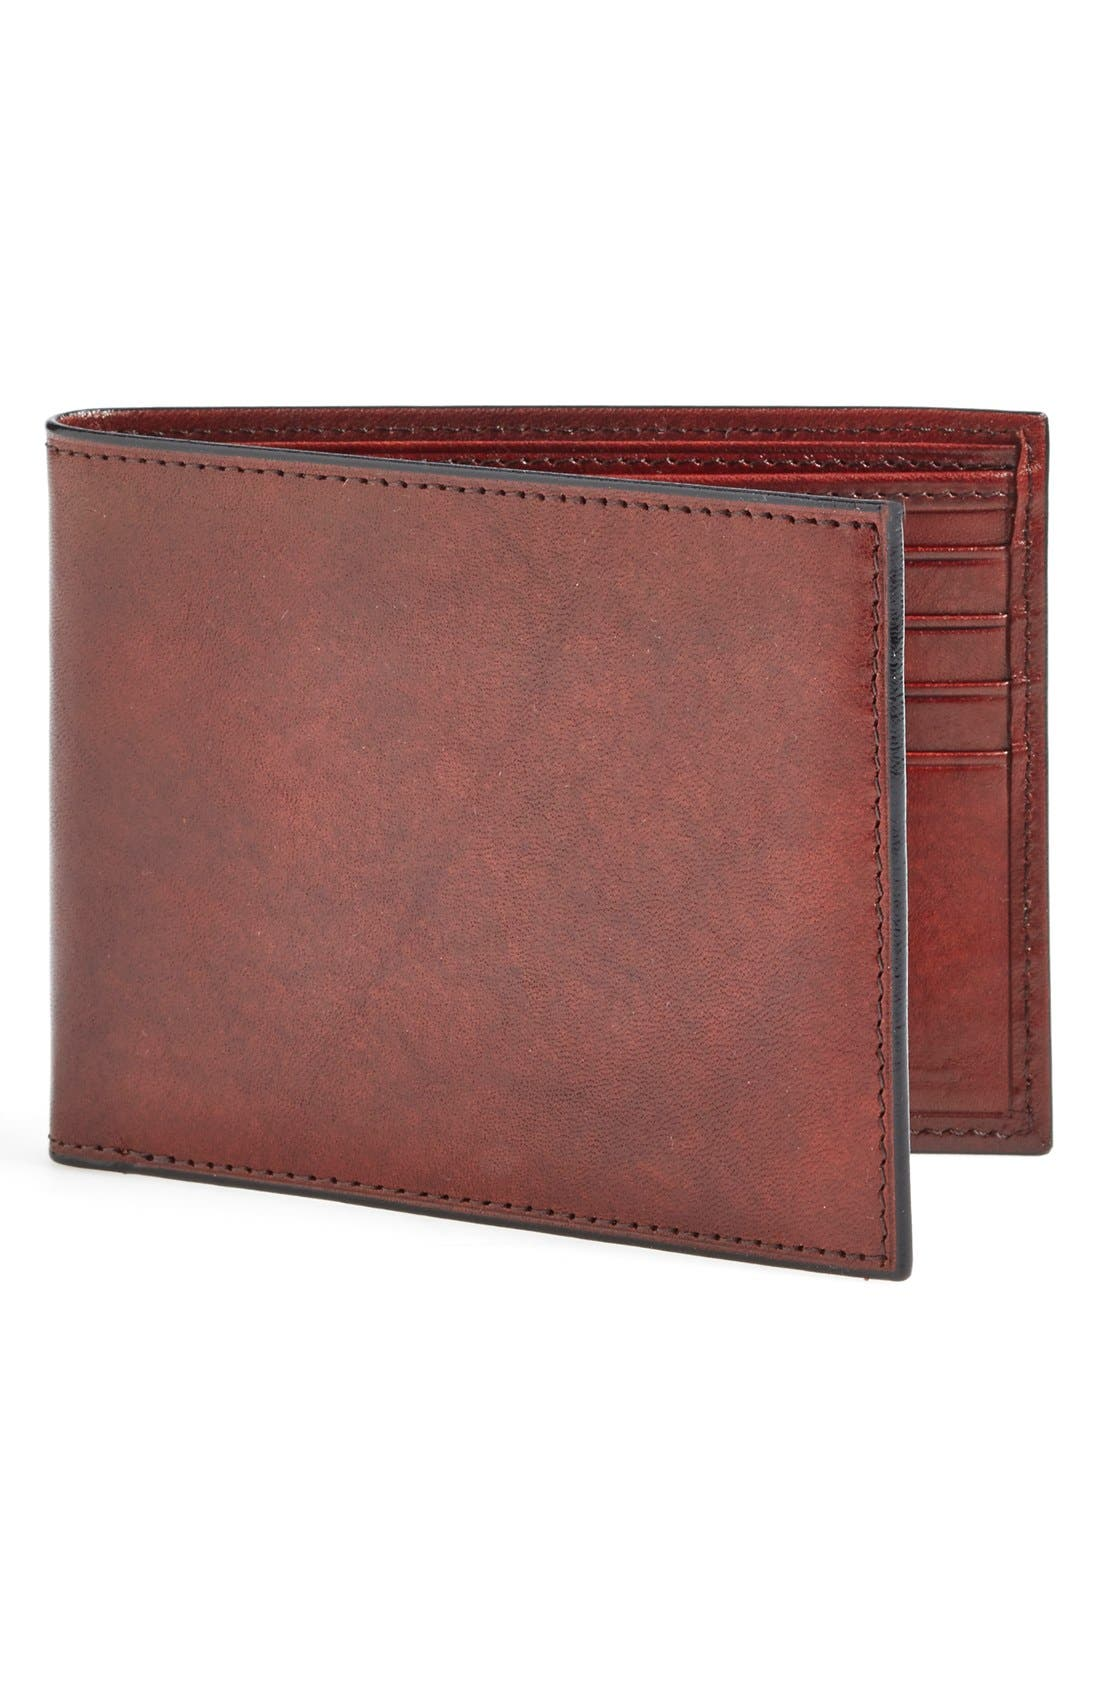 'Old Leather' Deluxe Wallet,                             Main thumbnail 1, color,                             Dark Brown